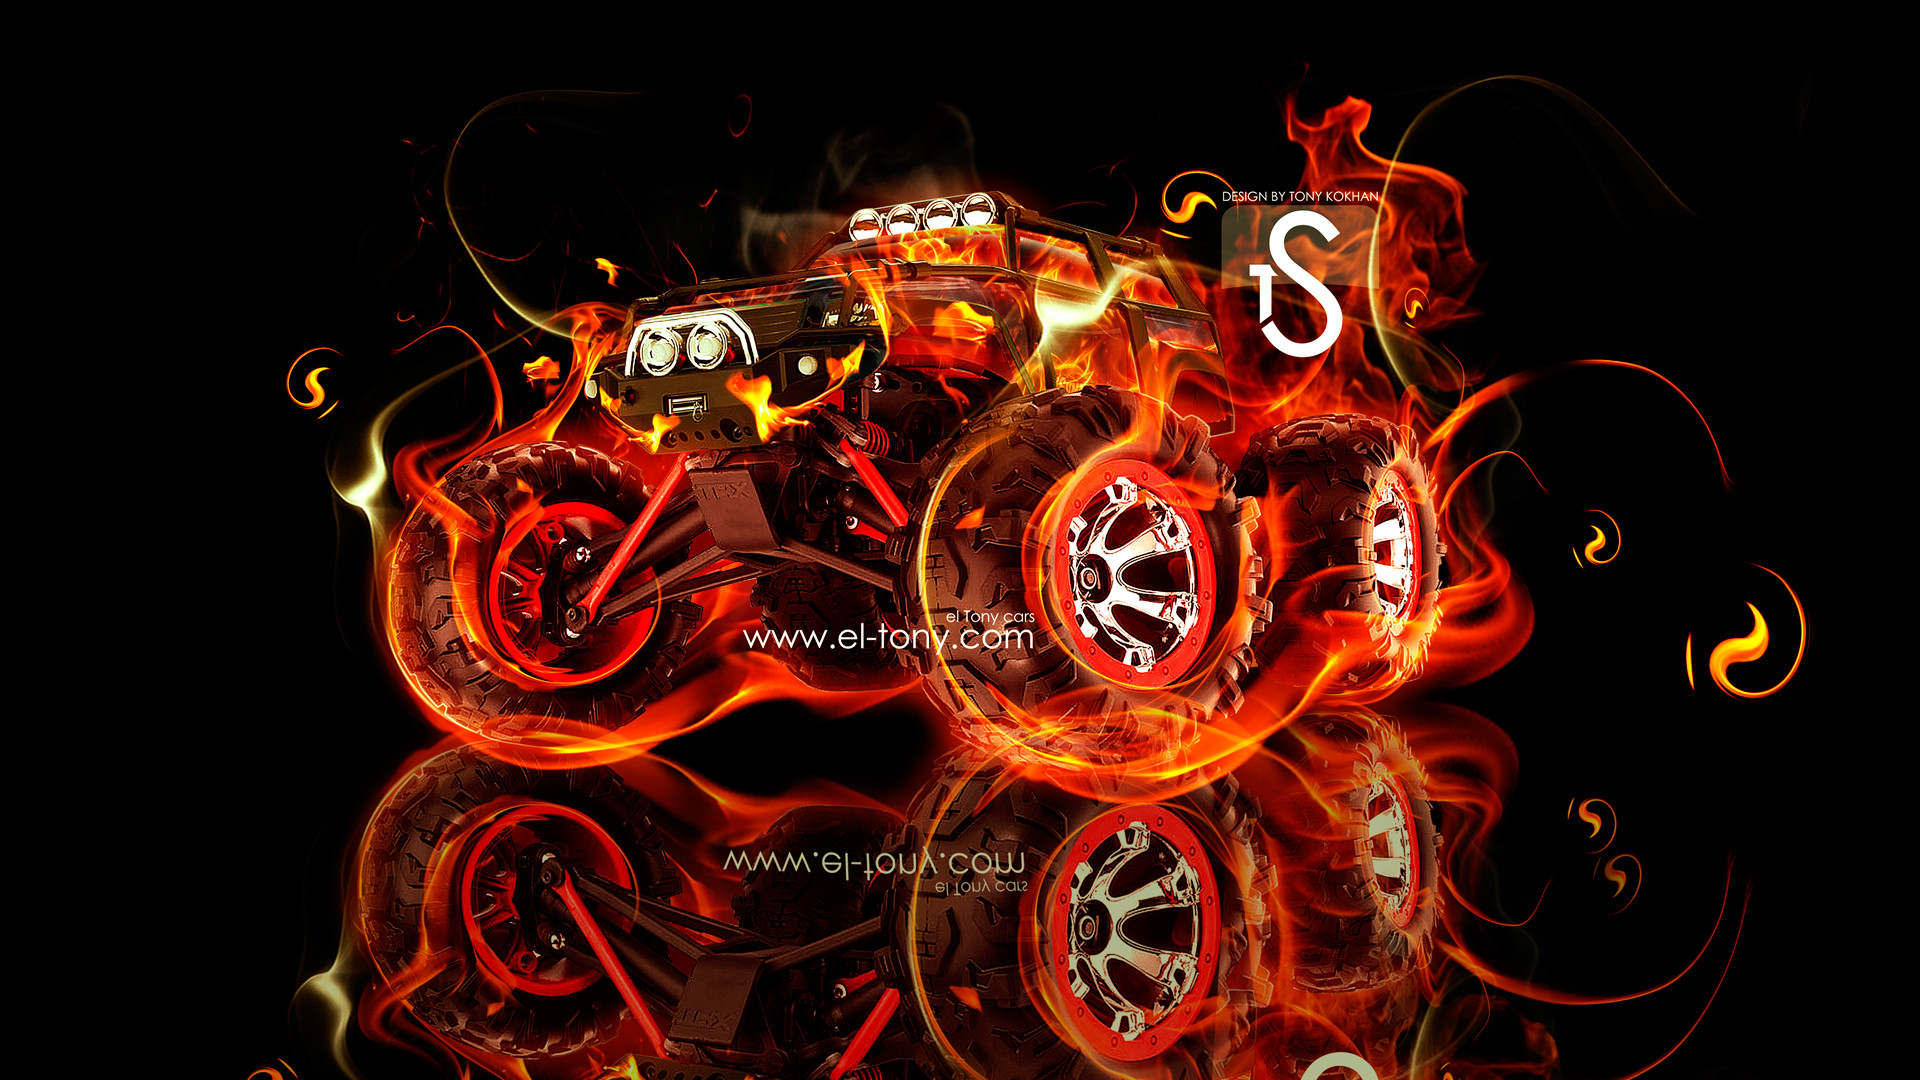 Crazy Flames Monster Truck Rally HD Wallpapers   Pickup Truck